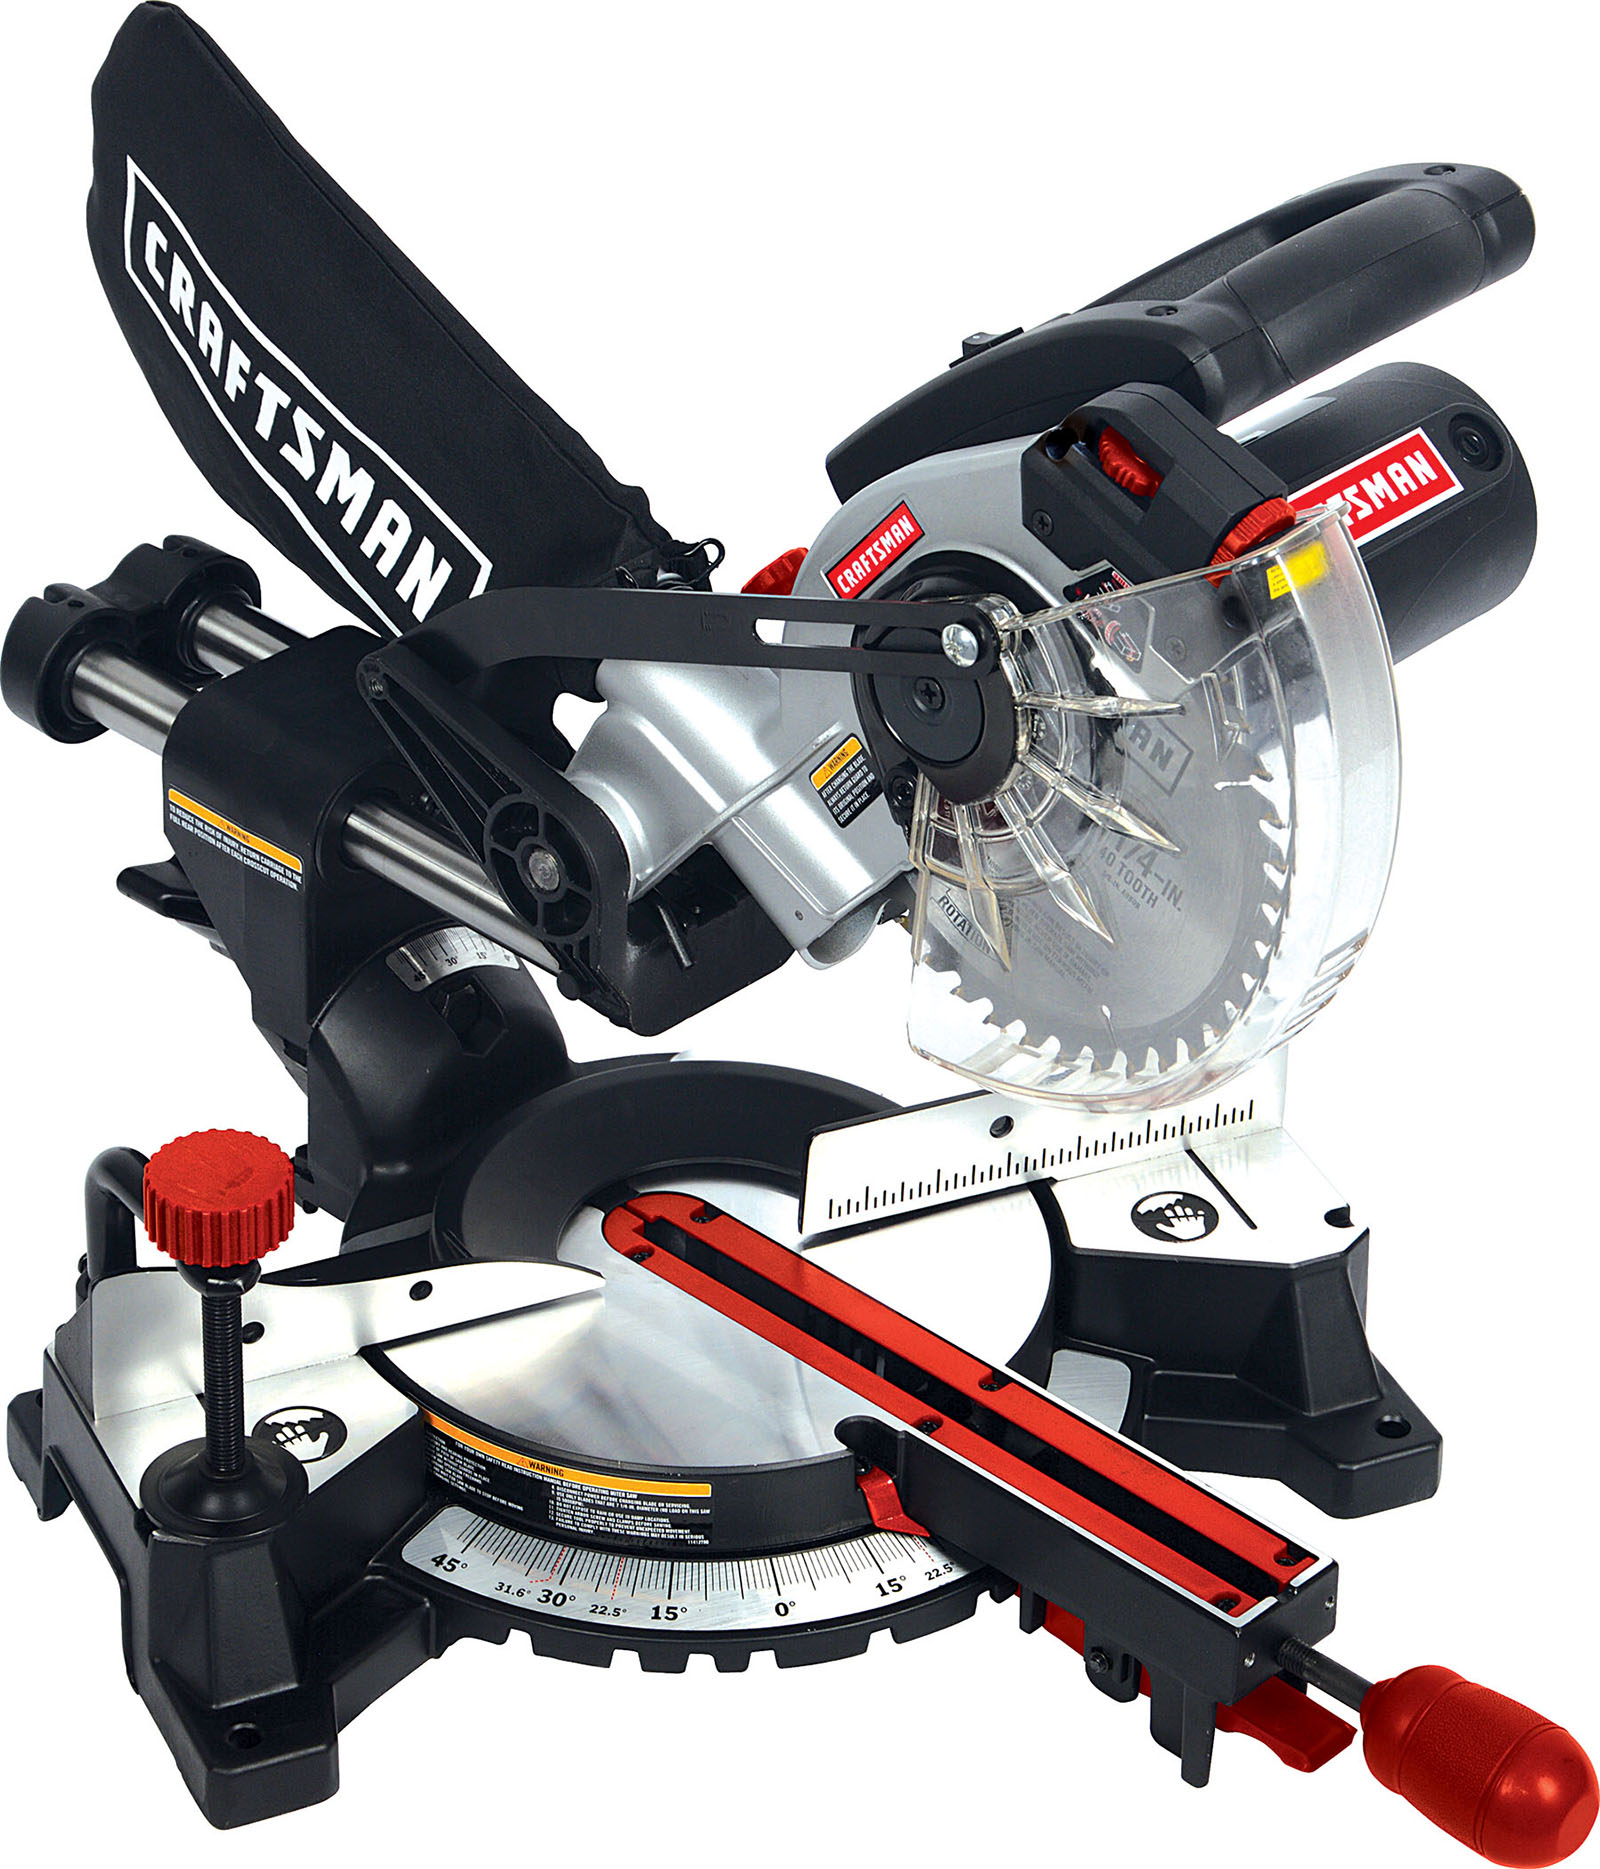 Task Force Miter Saw Replacement Parts